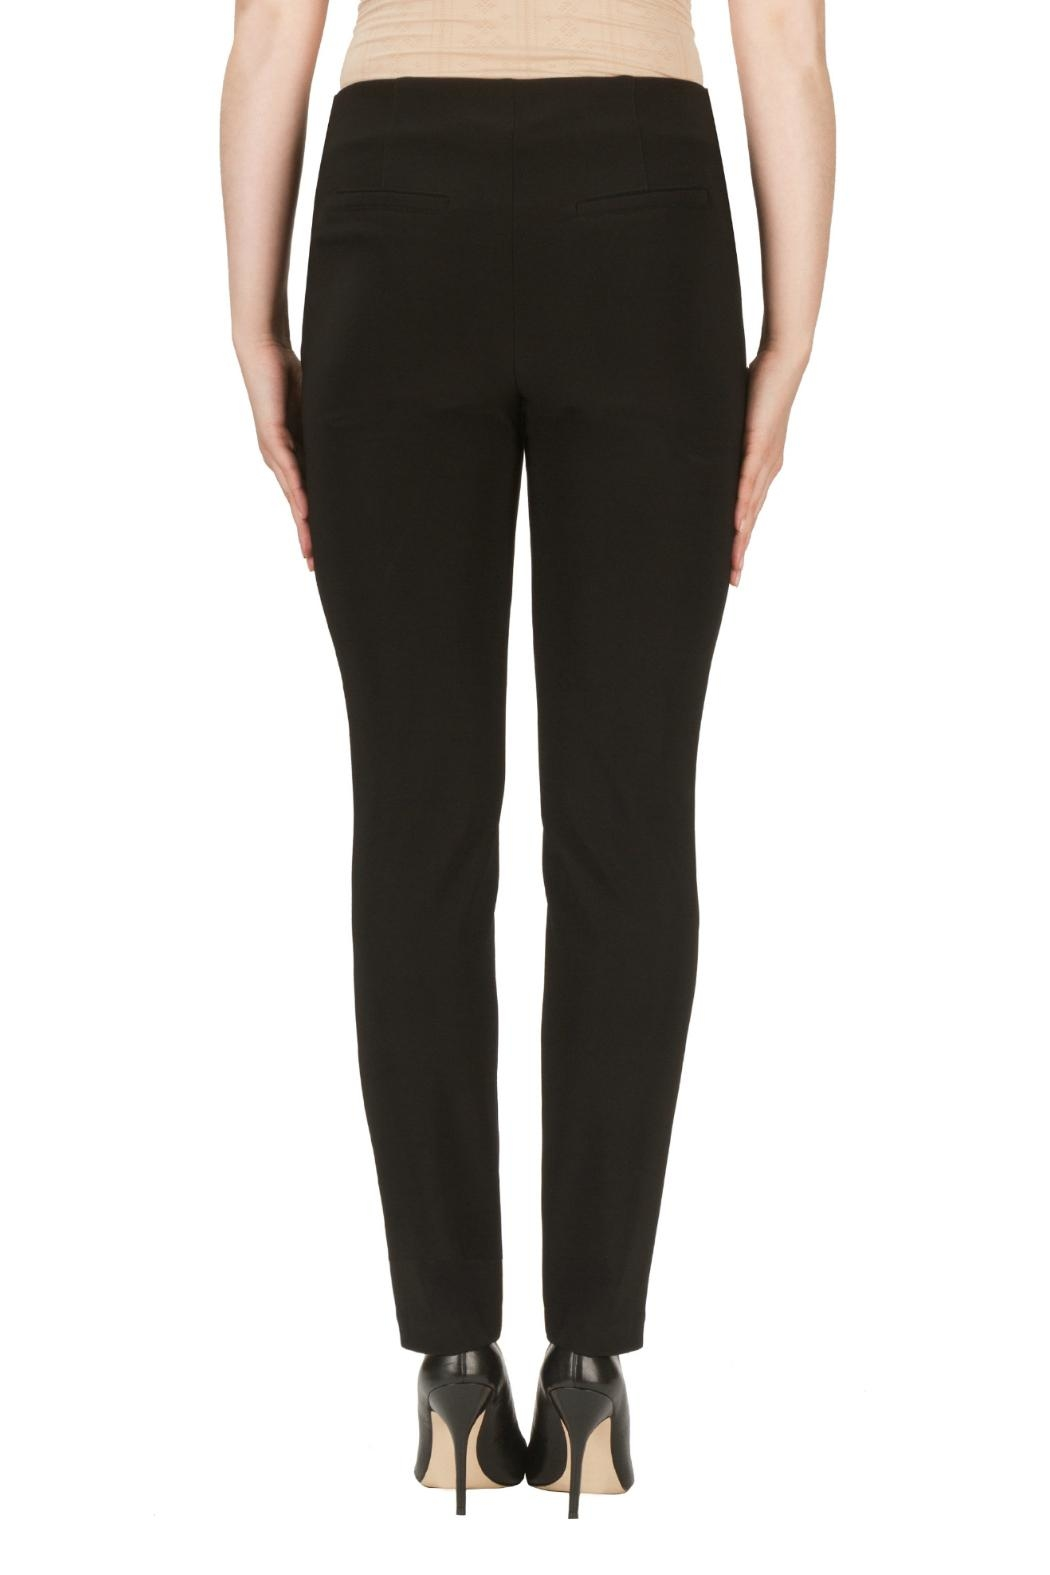 Joseph Ribkoff Zipper Pleated Pant - Side Cropped Image